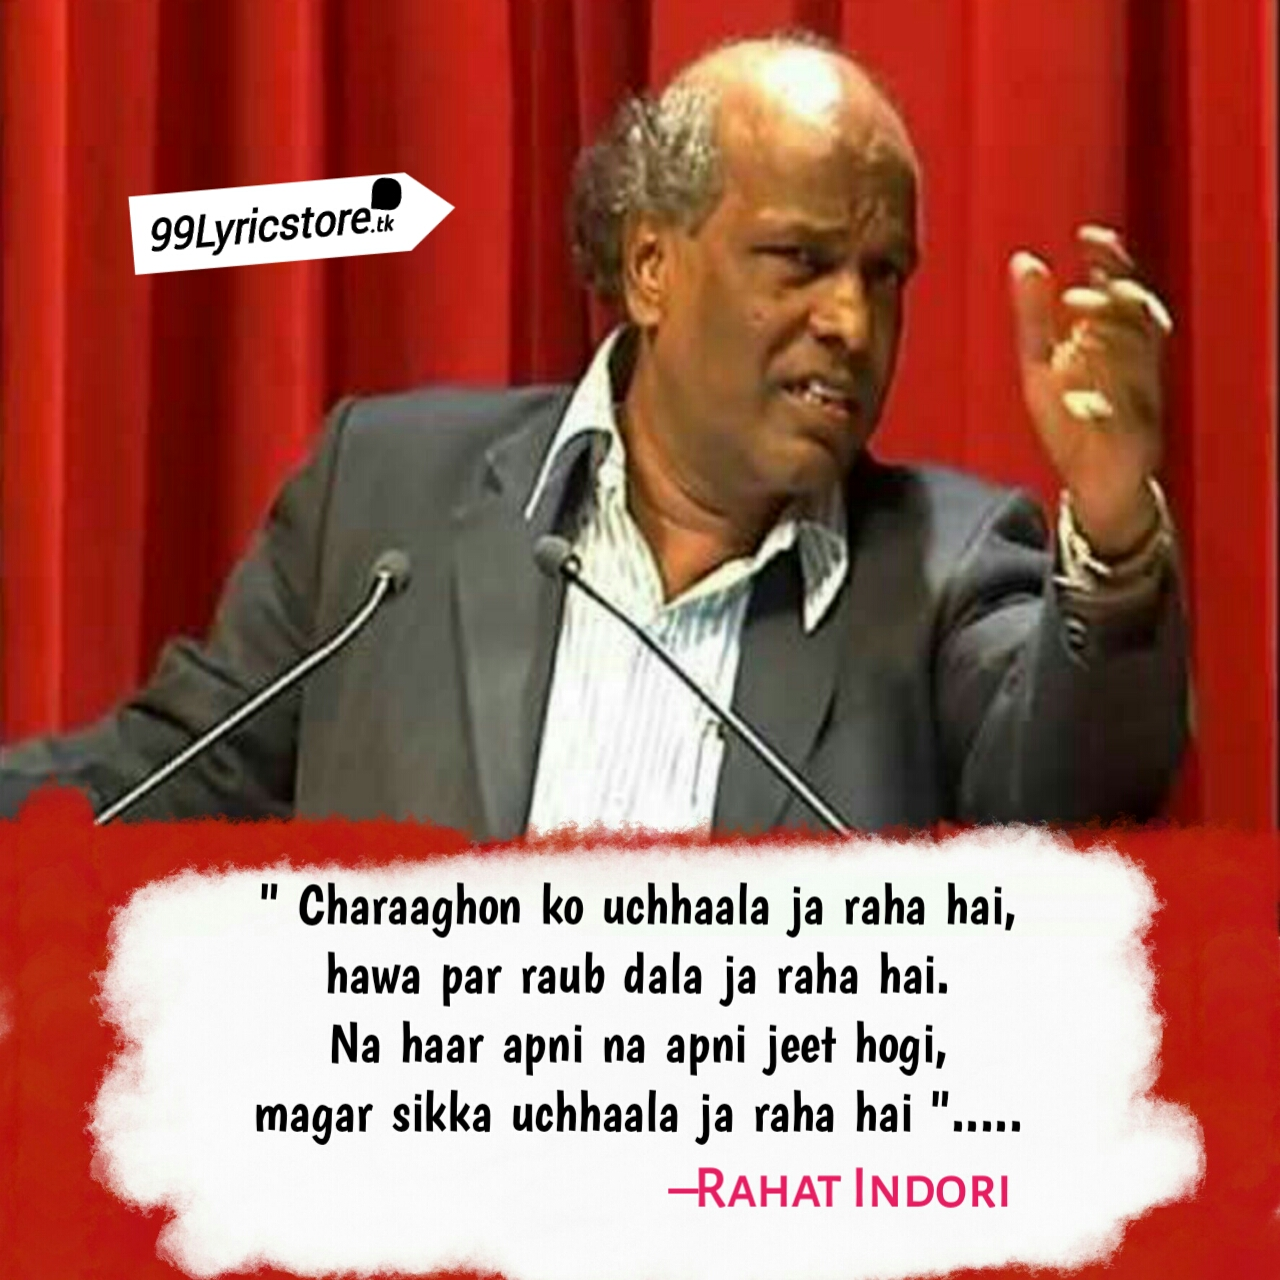 Charaaghon Ko Uchhaala Ja Raha Hai – Rahat Indori | Ghazal Poetry, Rahat Indori ghazal, rahat indori ghazal lyrics, rahat indori ghazals hindi, rahat indori ghazal in hindi font,  rahat indori ghazal mushaira, rahat indori ghazal in urdu, rahat indori ghazal youtube,  rahat indori ghazal list, rahat indori ghazal in urdu, rahat indori poem in hindi, राहत इंदौरी ग़ज़ल, rahat indori all ghazal in hindi, rahat indori all ghazal, rahat indori ki ghazal,  rahat indori best ghazal, rahat indori ghazal collection,  dr rahat indori ghazal, rahat indori famous ghazal, rahat indori full ghazal, rahat indori ghazal hindi, rahat indori poem hindi, rahat indori ghazal in hindi, राहत इंदौरी ग़ज़ल इन हिंदी, rahat indori ki ghazal in hindi, rahat indori ki ghazal mushaira, rahat indori ki poem, dr rahat indori ki ghazal, a dr rahat indori ka ghazal, rahat indori latest ghazal, rahat indori motivational poem, rahat indori ki ghazal video, rahat indori new ghazal, rahat indori new poem, rahat indori ki new ghazal,  rahat indori romantic ghazal, rahat indori ghazal shayari, rahat indori sahab ka ghazal, राहत इंदौरी ग़ज़ल शायरी, rahat indori urdu ghazal, rahat indori ghazal video, rahat indori poem video, ghazal lyrics by rahat indori, rahat indori ghazal lyrics in hindi, rahat indori sher in hindi,  rahat indori sher in hindi images, rahat indori best shayari in hindi, rahat indori shayri, rahat indori shayari in hindi, rahat indori sher, rahat indori status, rahat indori poetry, rahat indori ghazal, rahat indori quotes, rahat indori shayar, rahat indori shayri image, rahat indori youtube, rahat indori ki shayariya, rahat indori ke sher, rahat indori sahab, rahat indori lyrics, rahat indori shayari video, राहत इंदौरी, rahat indori all india mushaira, rahat indori aasman laye ho, rahat indori all ghazal in hindi, rahat indori aisi sardi hai, rahat indori mushaira, rahat indori aasman thodi hai, rahat indori amrood pak rahe honge, rahat indori agar khilaf hai, rahat indori best,  rahat indori best shayari 2018, rahat indori best poetry, rahat indori bewafa shayari, rahat indori best quotes, rahat indori best poem, rahat indori best ghazal in hindi, rahat indori best kavi sammelan, rahat indori best ghazal, rahat indori collection, rahat indori chand pagal hai, rahat indori  shayari, rahat indori classic shayari, rahat indori jashn e rekhta, rahat indori in english, rahat indori shayri on election, Rahat indori love shayari, rahat indori love Ghazal, rahat indori love poetry in Hindi, rahat indori love quotes in Hindi, rahat indori love quotes in two line, rahat indori mushaira, rahat indori mushaira video,  rahat indori mushaira in hindi,  rahat indori mushaira lyrics,   rahat indori mushaira latest,   rahat indori mushaira ghazal,   राहत इन्दोरी मुशाइरा,   dr rahat indori mushaira 2018 mehfil e mushaira,  rahat indori etv urdu mushaira,  rahat indori all mushaira,   rahat indori ki ghazal mushaira,  rahat indori mushaira in hindi,  hind mushaira rahat indori Rahat indori poetry, rahat indori poetry in hindi, rahat indori poetry images, rahat indori poetry in english, rahat indori poetry in urdu,  rahat indori poetry on love, rahat indori poetry in hindi lyrics, rahat indori poetry on politics,  rahat indori poetry in urdu font, rahat indori poetry thodi hai, राहत इंदौरी पोएट्री, rahat indori all poetry, rahat indori all poems, rahat indori all poet, rahat indori poetry best, rahat indori best poetry in hindi, rahat indori best poetry in urdu, rahat indori best poem, dr rahat indori best poetry, poetry by rahat indori, rahat indori poetry collection, rahat indori poetry,  dr rahat indori poetry in urdu, rahat indori poetry funny, rahat indori famous poetry, rahat indori famous poem, rahat indori poetry in hindi font, rahat indori poetry hindi, rahat indori poem hindi, rahat indori hindi poet, rahat indori poetry images in hindi, rahat indori love poetry in hindi, rahat indori poetry in urdu, rahat indori poetry, rahat indori poem in hindi, rahat indori poet in hindi, rahat indori indian poet, rahat indori ki poetry, rahat indori ki poem, rahat indori poetry lyrics, rahat indori poetry love, rahat indori poetry lyrics in hindi, rahat indori latest poetry, rahat indori poetry 2 line, rahat indori motivational poem, rahat indori new poetry, rahat indori new poem, rahat indori old poetry, best of rahat indori poetry, poetry of rahat indori, poetry of rahat indori in urdu, poetry of rahat indori in hindi, rahat indori poetry pics, rahat indori urdu poetry, rahat indori poem in hindi,  poet rahat indori poetry, Charaaghon ko uchhaala ja raha hai,  hawa par raub dala ja raha hai.